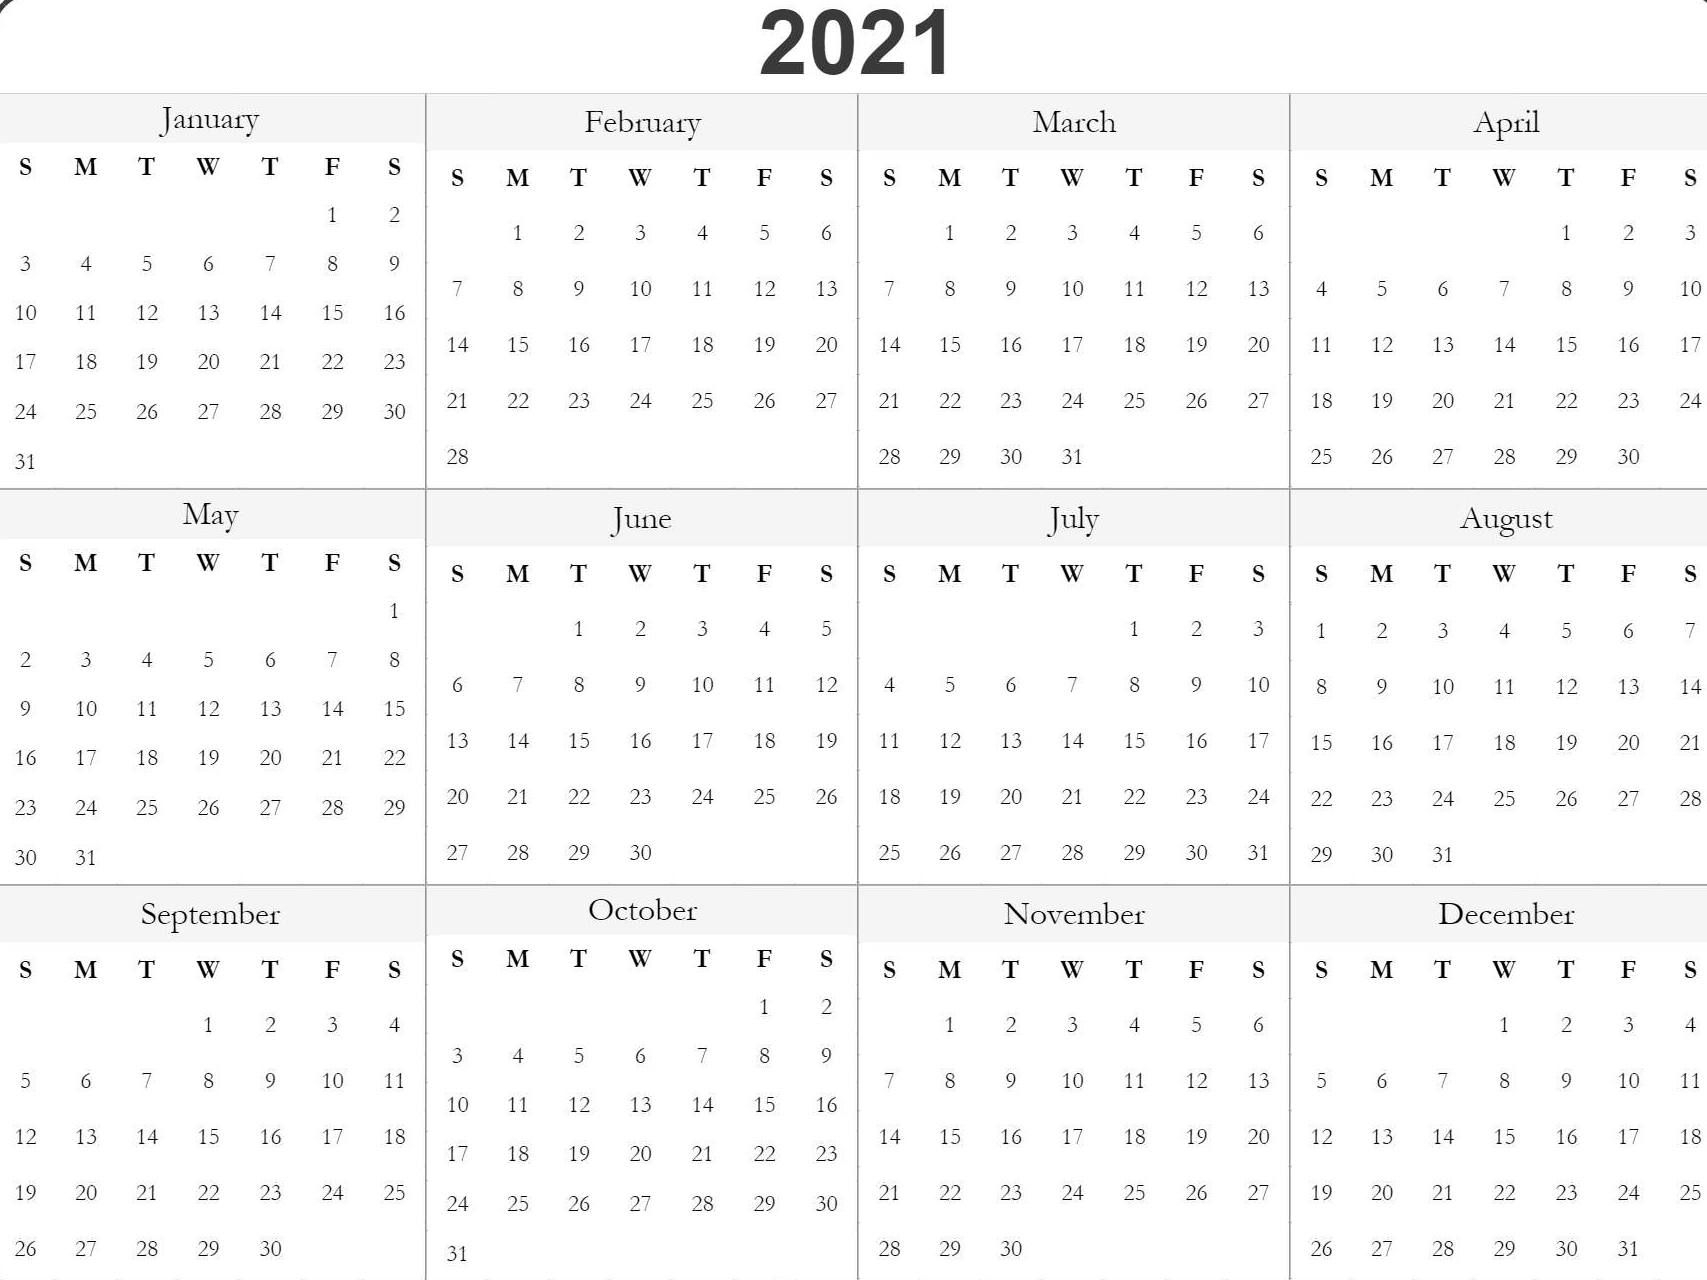 Blank Printable 2021 Calendar Template In 2020 | Free within Free Print 2021 Calendars Without Downloading